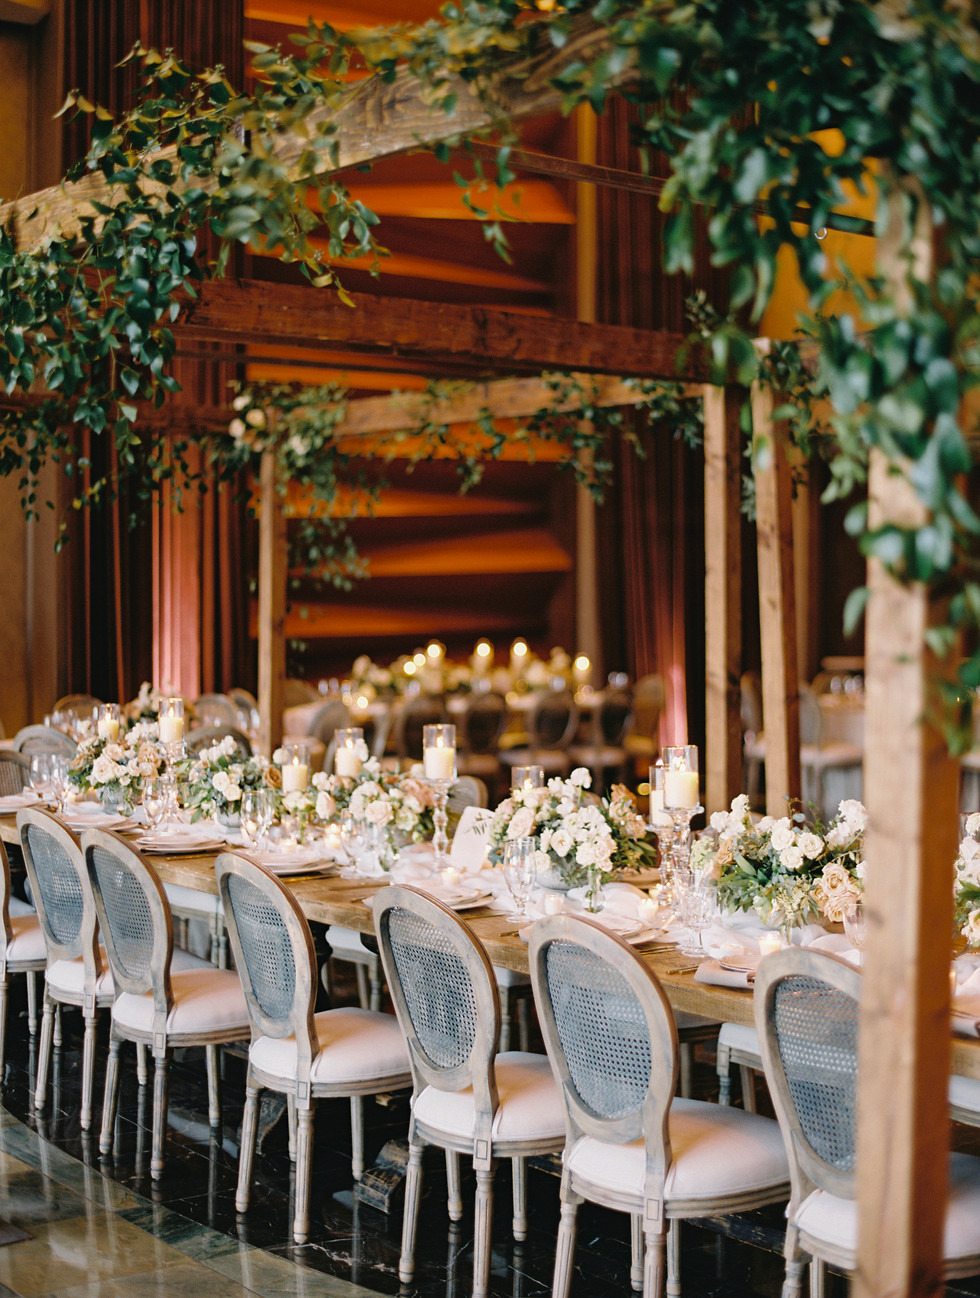 White, ivory and champagne wedding reception. Photo: Gaby Jeter